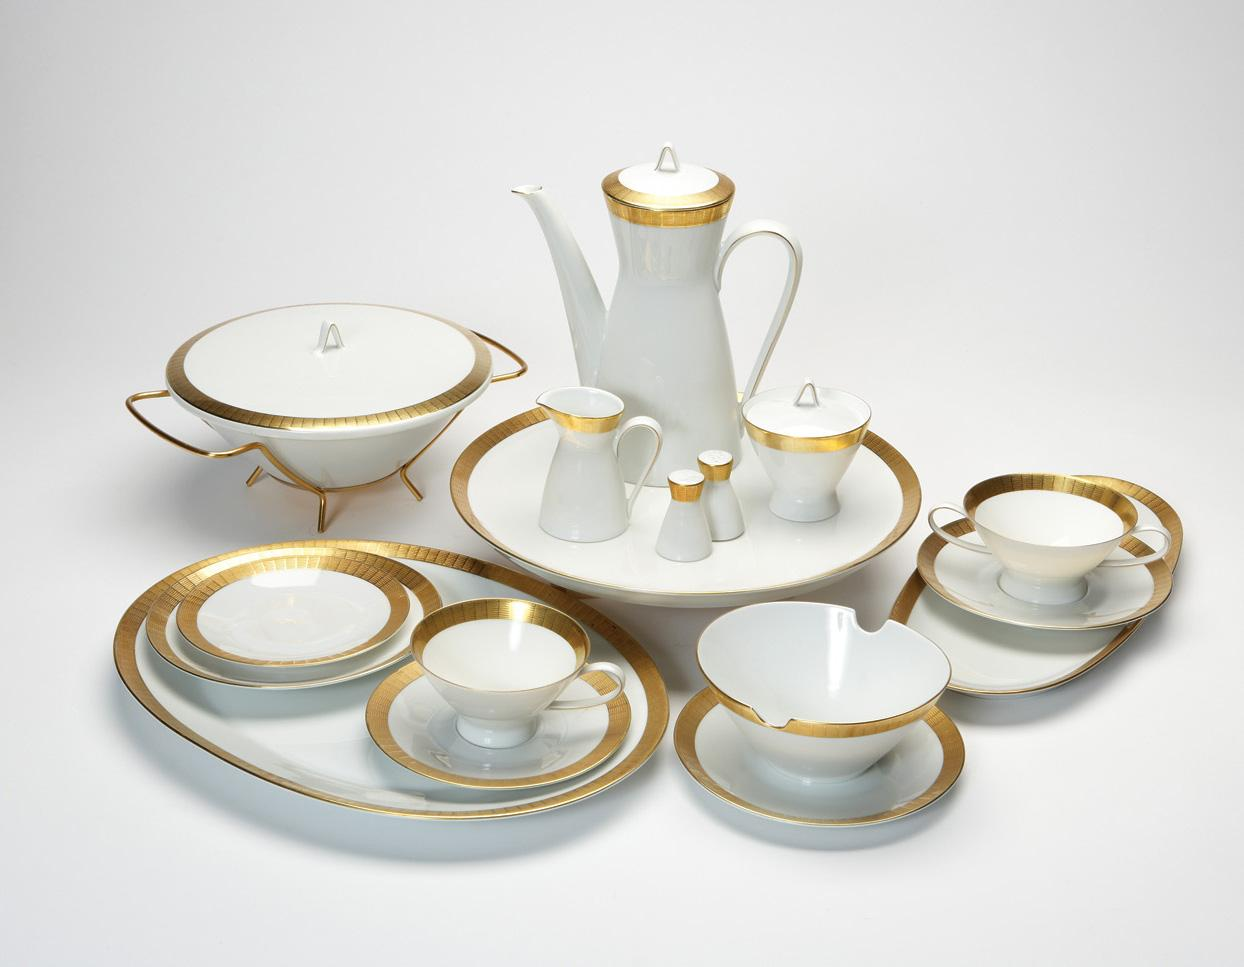 raymond loewy rosenthal porcelain and gold service. Black Bedroom Furniture Sets. Home Design Ideas